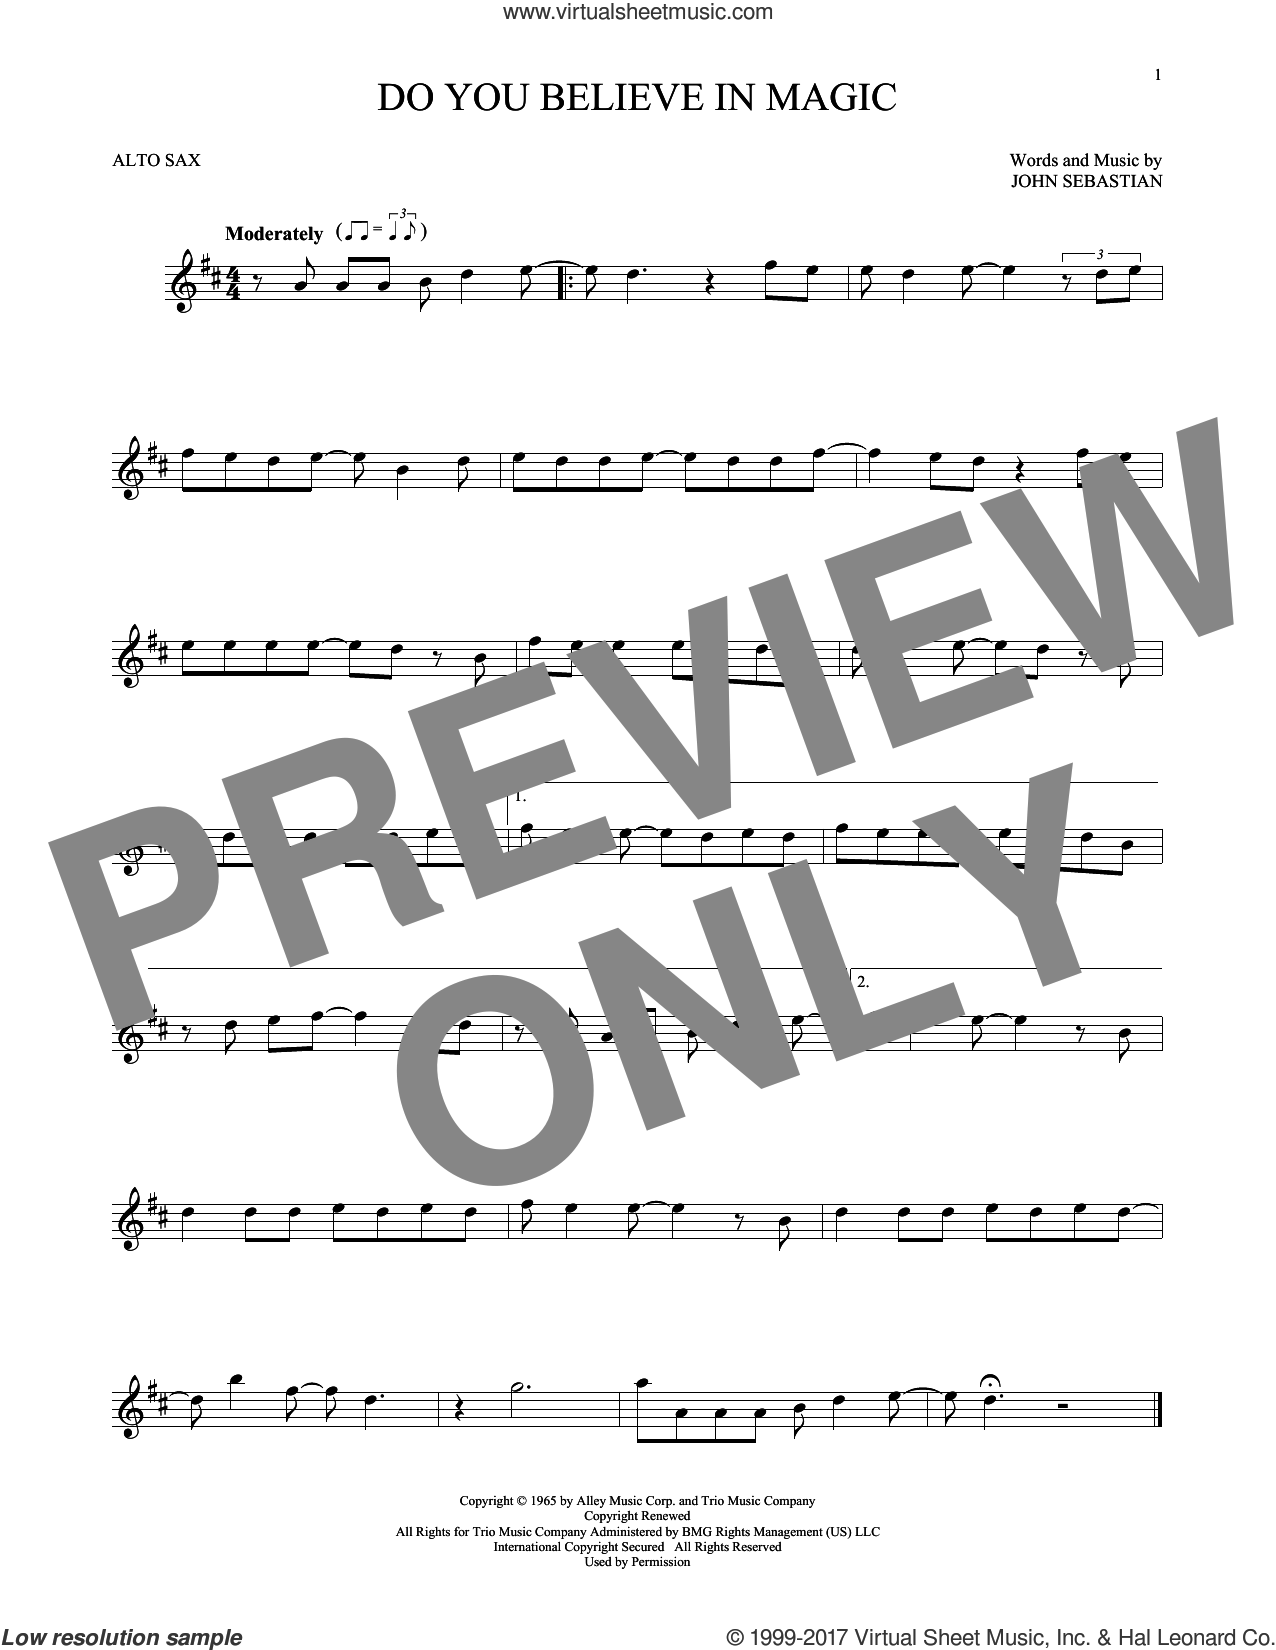 Do You Believe In Magic sheet music for alto saxophone solo by Lovin' Spoonful and John Sebastian, intermediate skill level